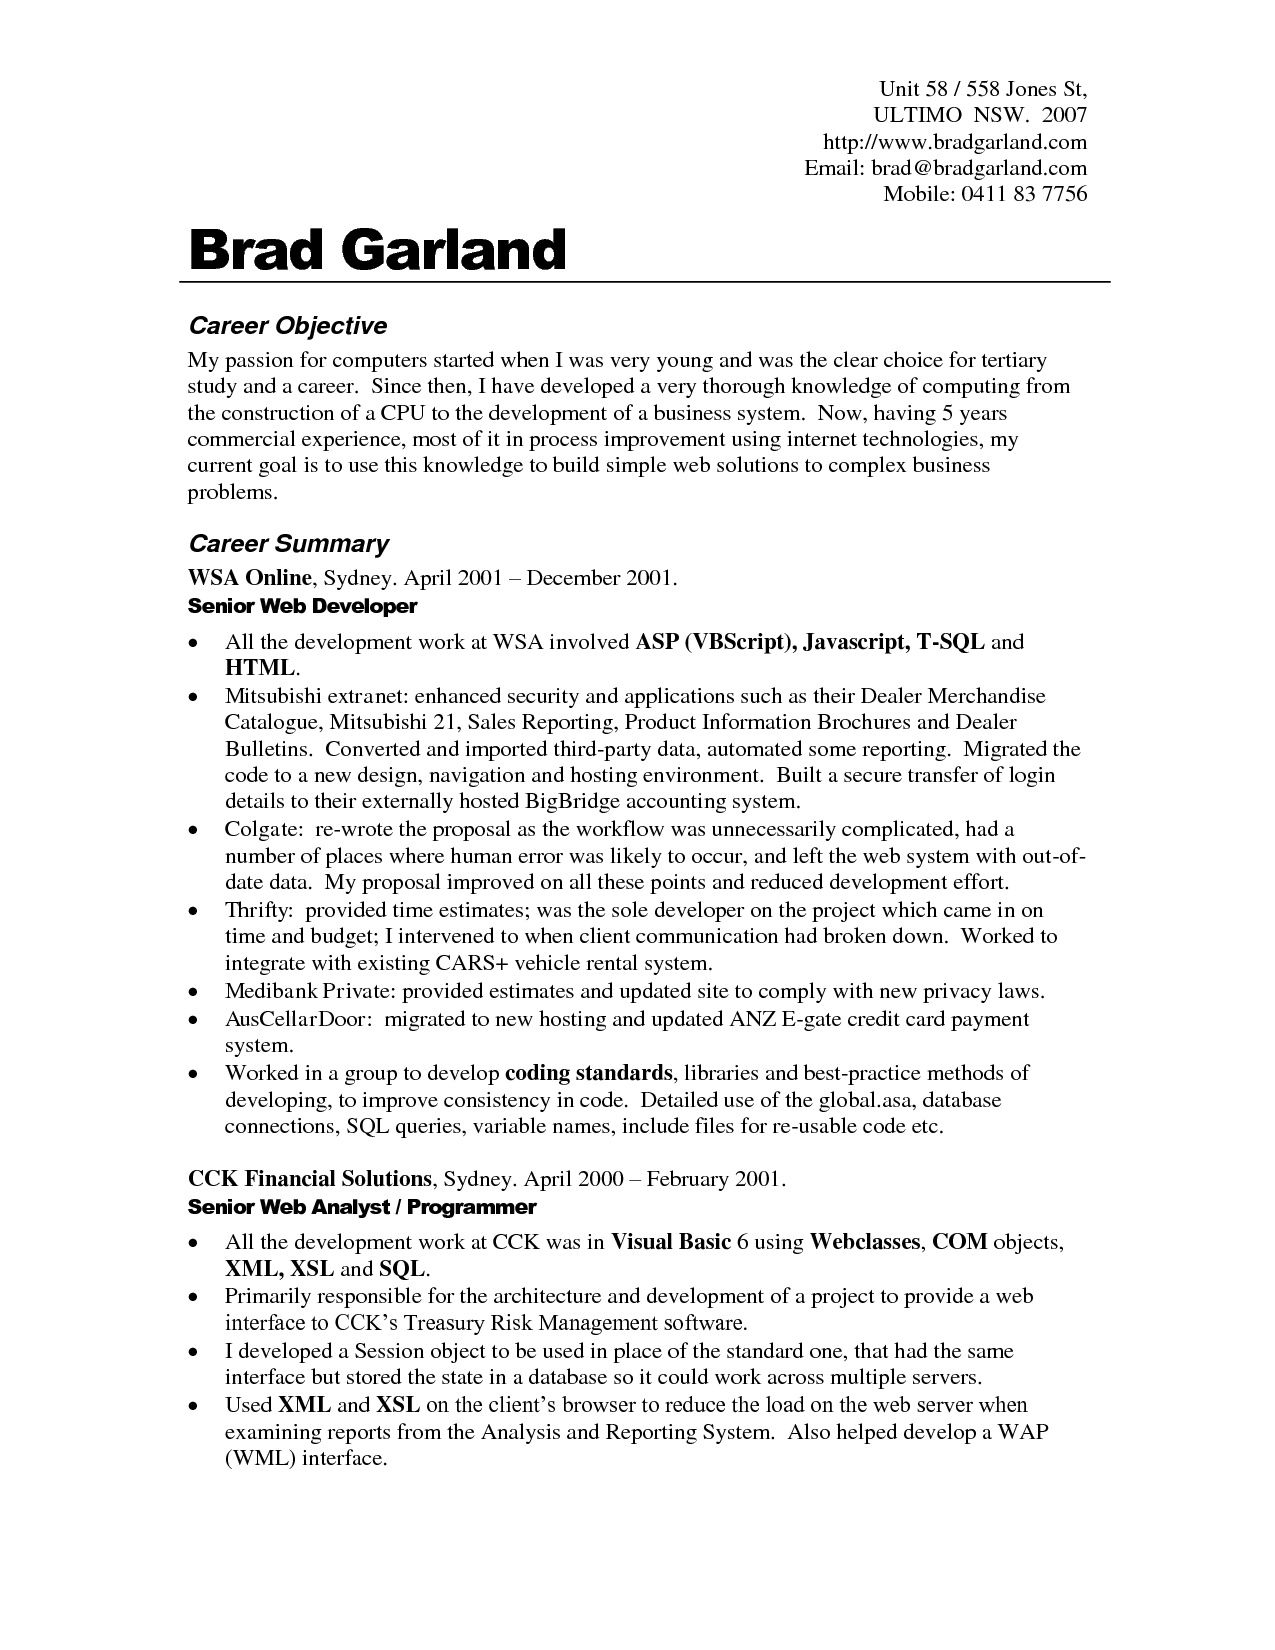 Resume Examples Job Objective Examples Objective Resume - Career-objective-on-resume